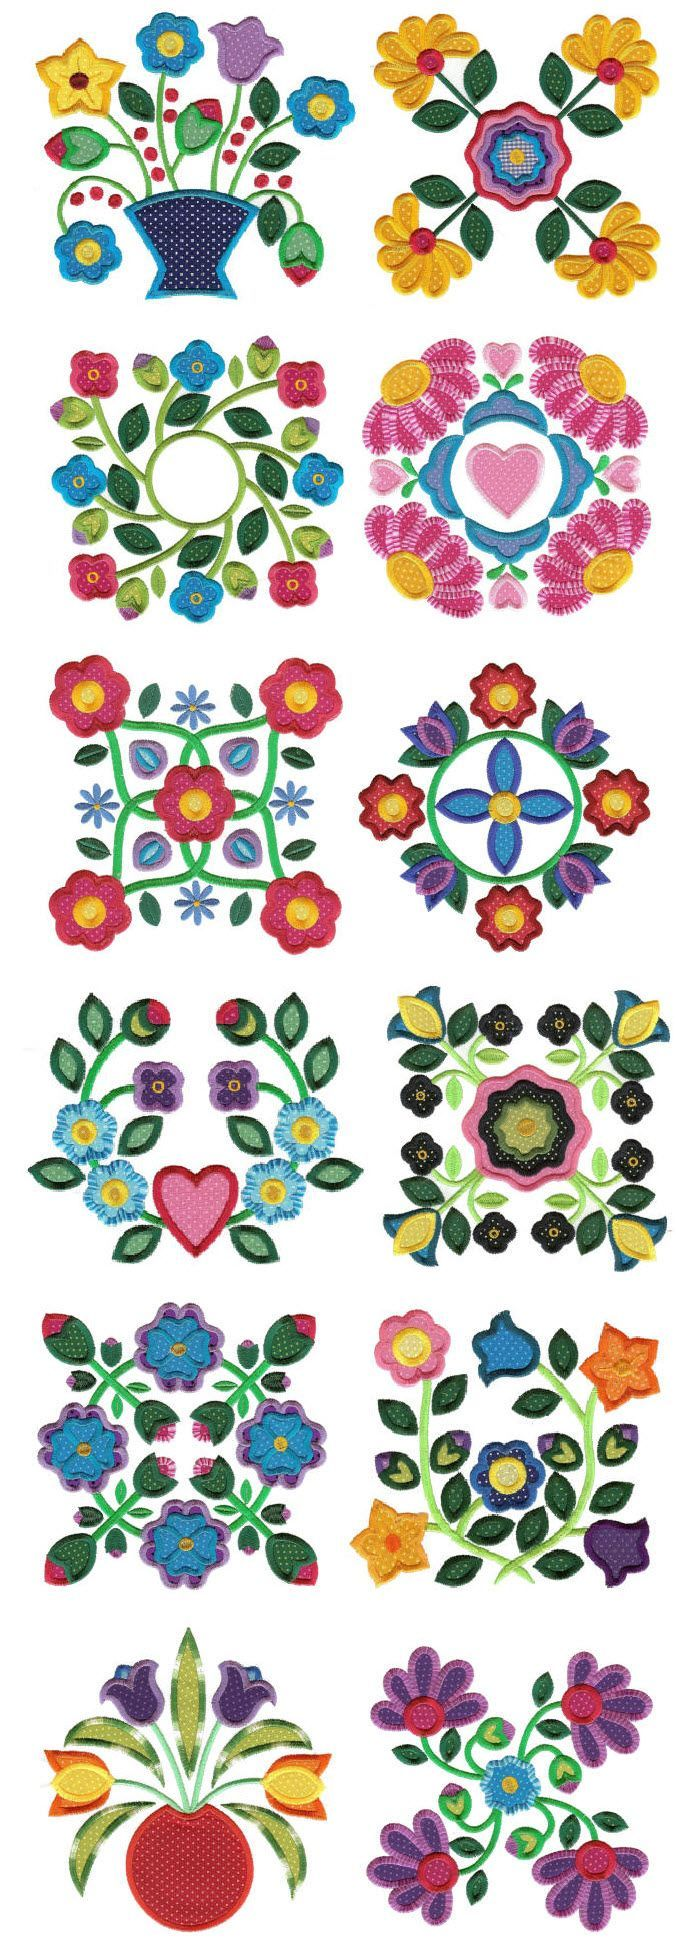 applique baltimore album blocks machine embroidery designs: